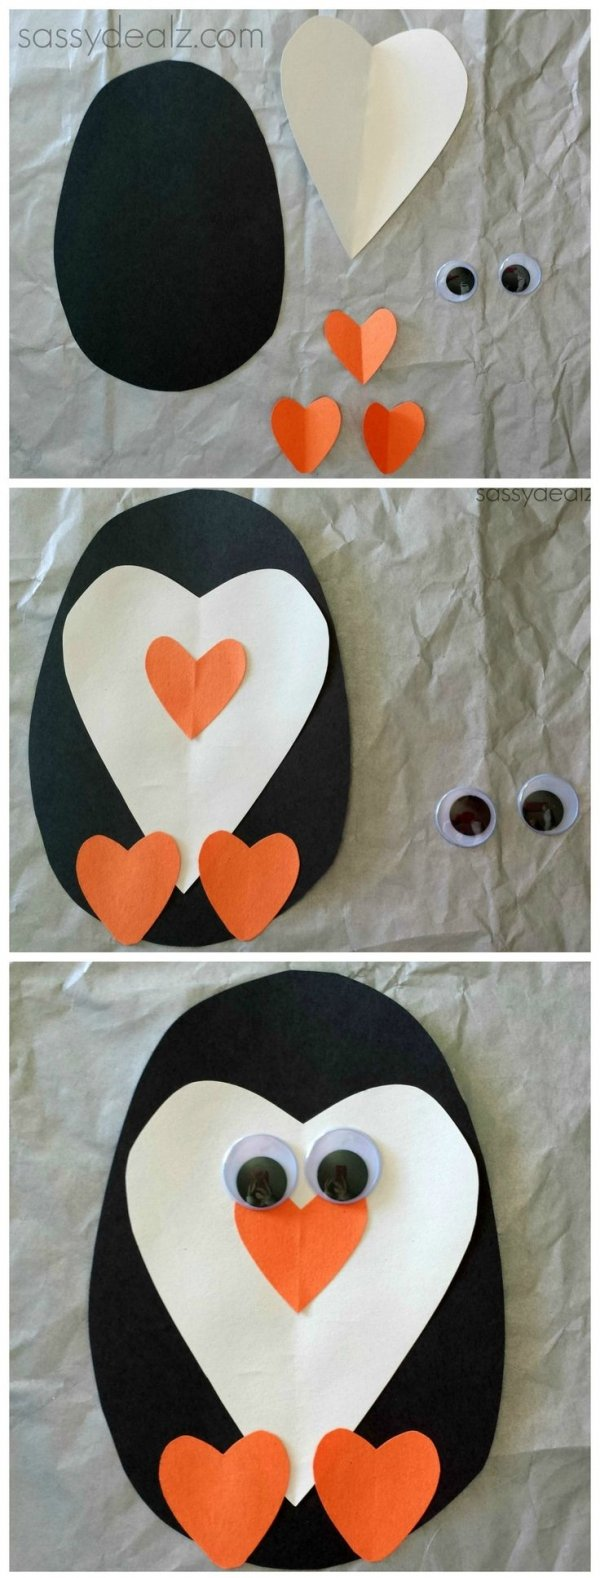 Fun valentines day crafts - 1 Paper Heart Penguin